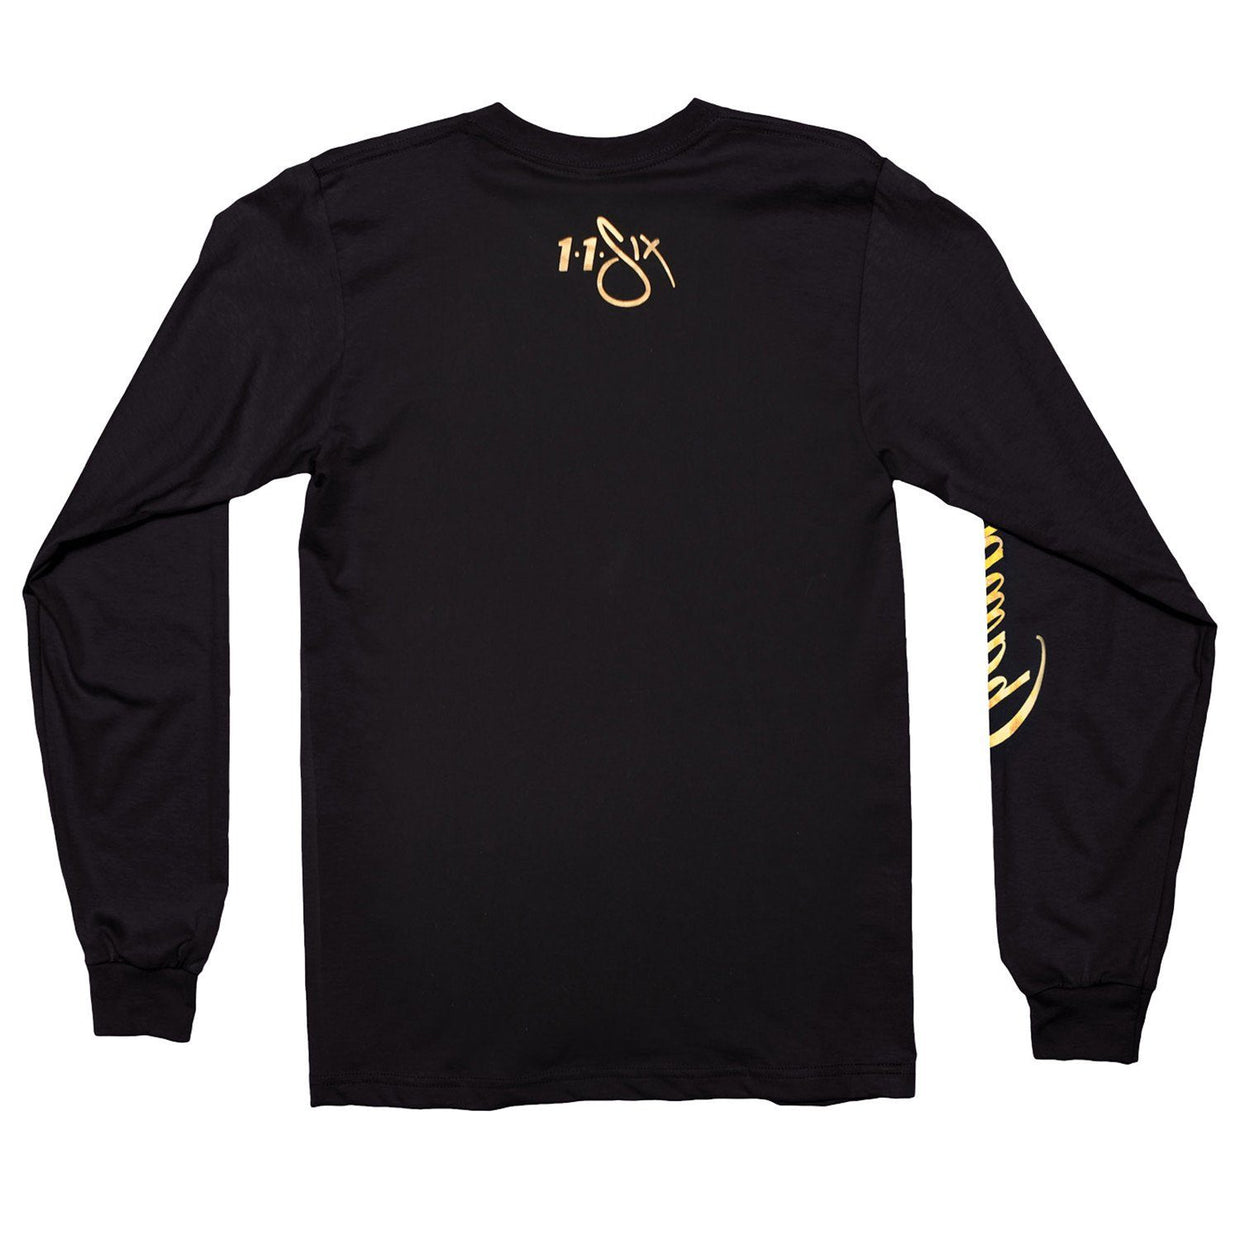 116 Gold Foil Champs Long Sleeve Tee